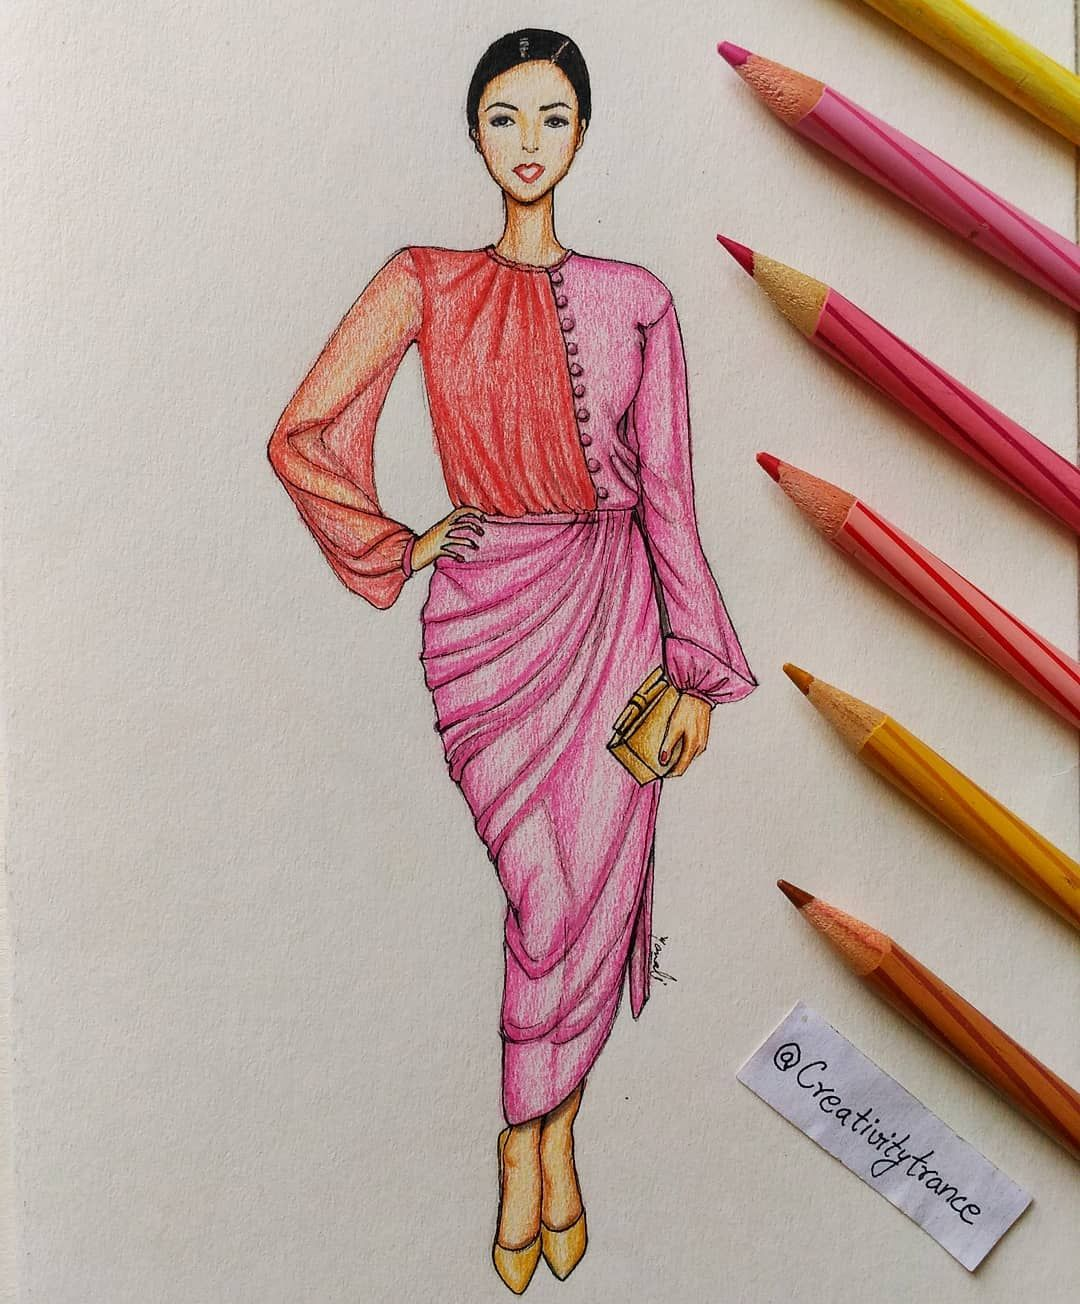 And Am Back To Sketching Fashion Illustration Today S Inspiration Is Charming Sophia Illustration Fashion Design Fashion Sketchbook Fashion Design Drawings